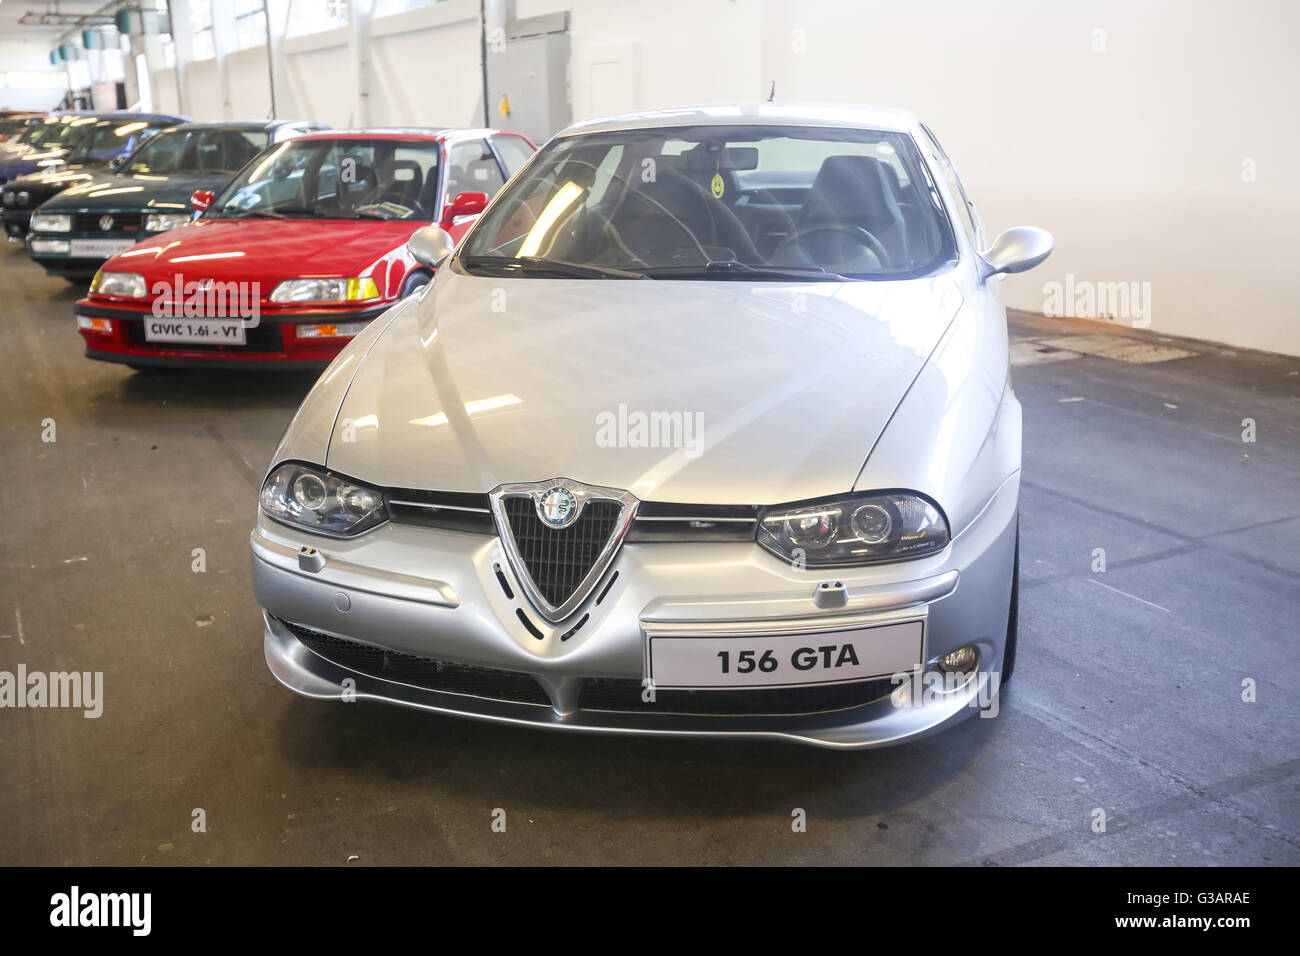 ZAGREB, CROATIA - JUNE 4, 2016 : An Alfa Romeo 156 automobile exhibited at Fast and furious street race in Zagreb, Stock Photo